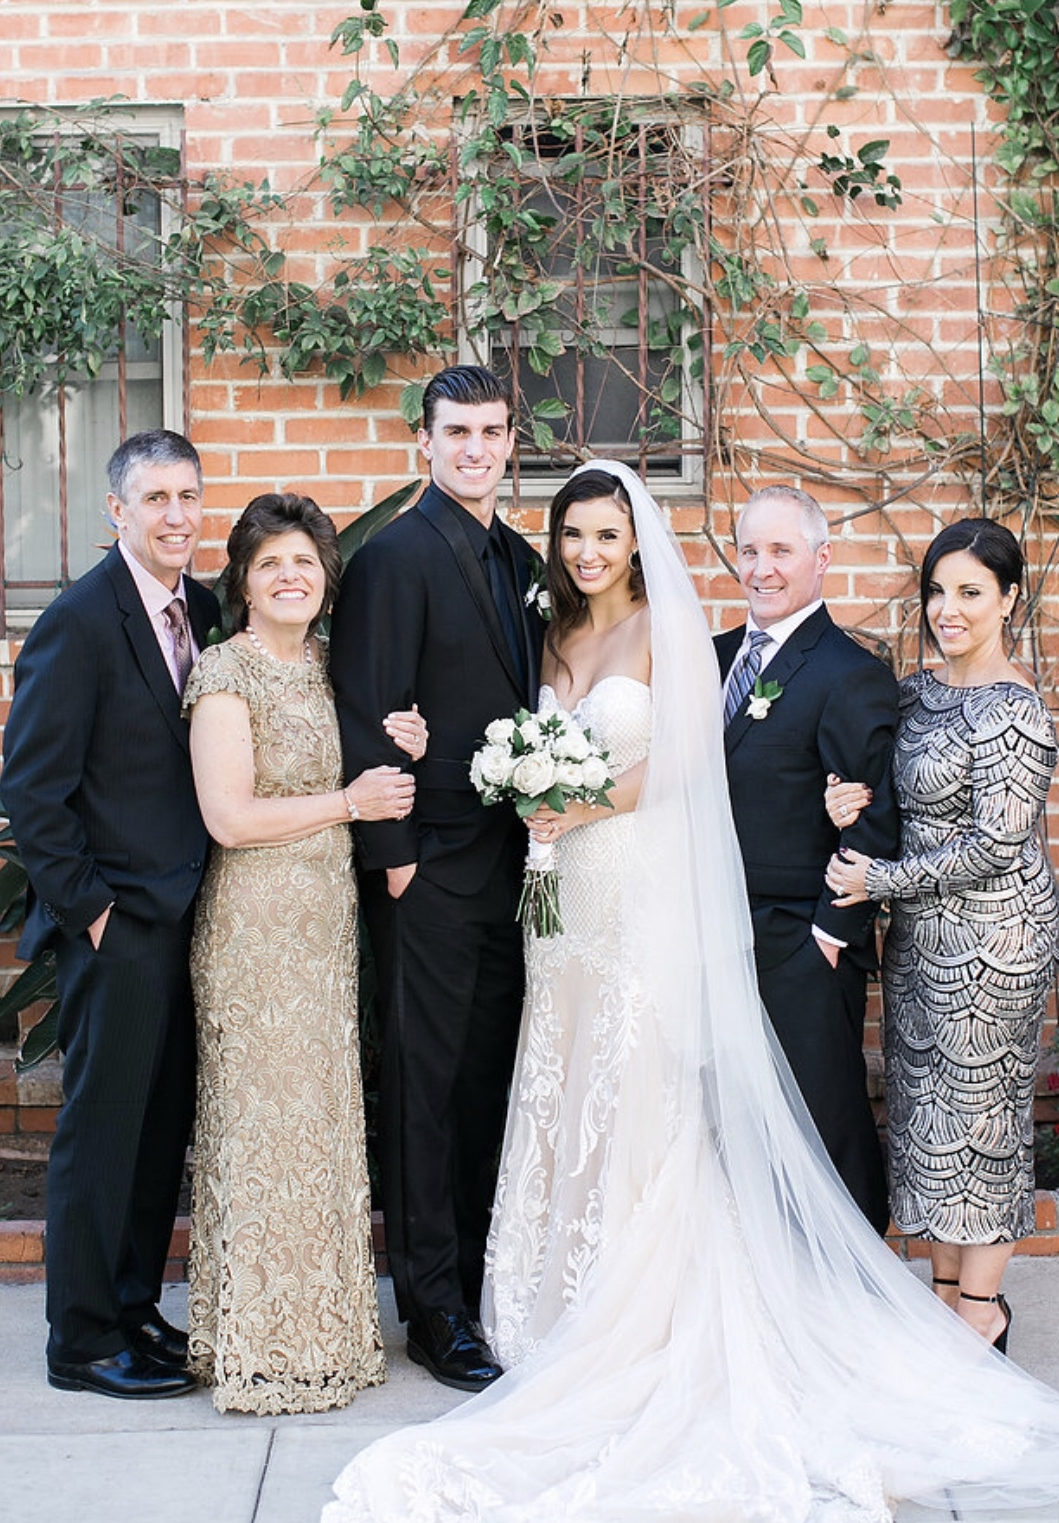 Brunette Bride with groom and family for wedding day photo. Bridal look by Vanity Belle Orange County (Costa Mesa) and San Diego (La Jolla). thevanitybelle.com